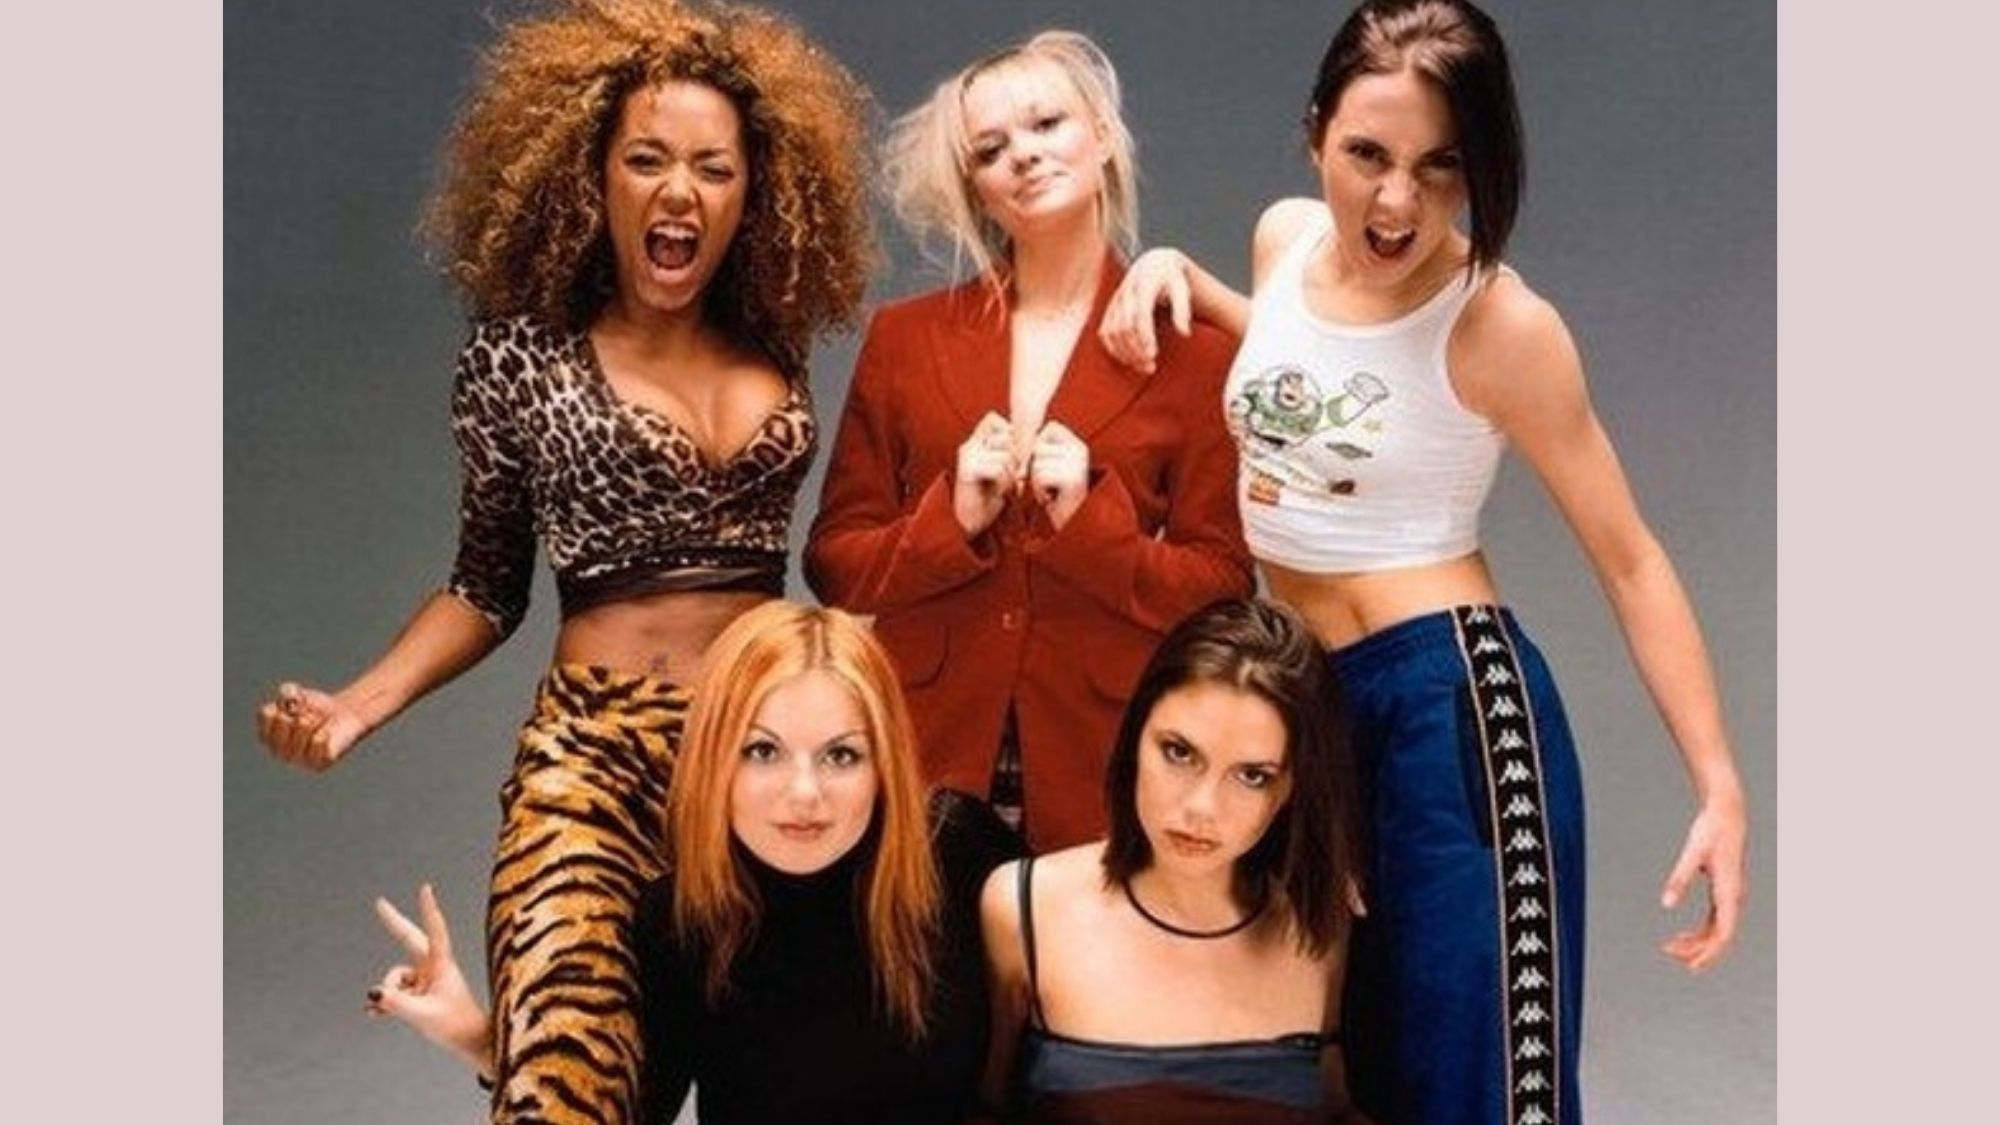 Spice Girls reunite for their 25th anniversary